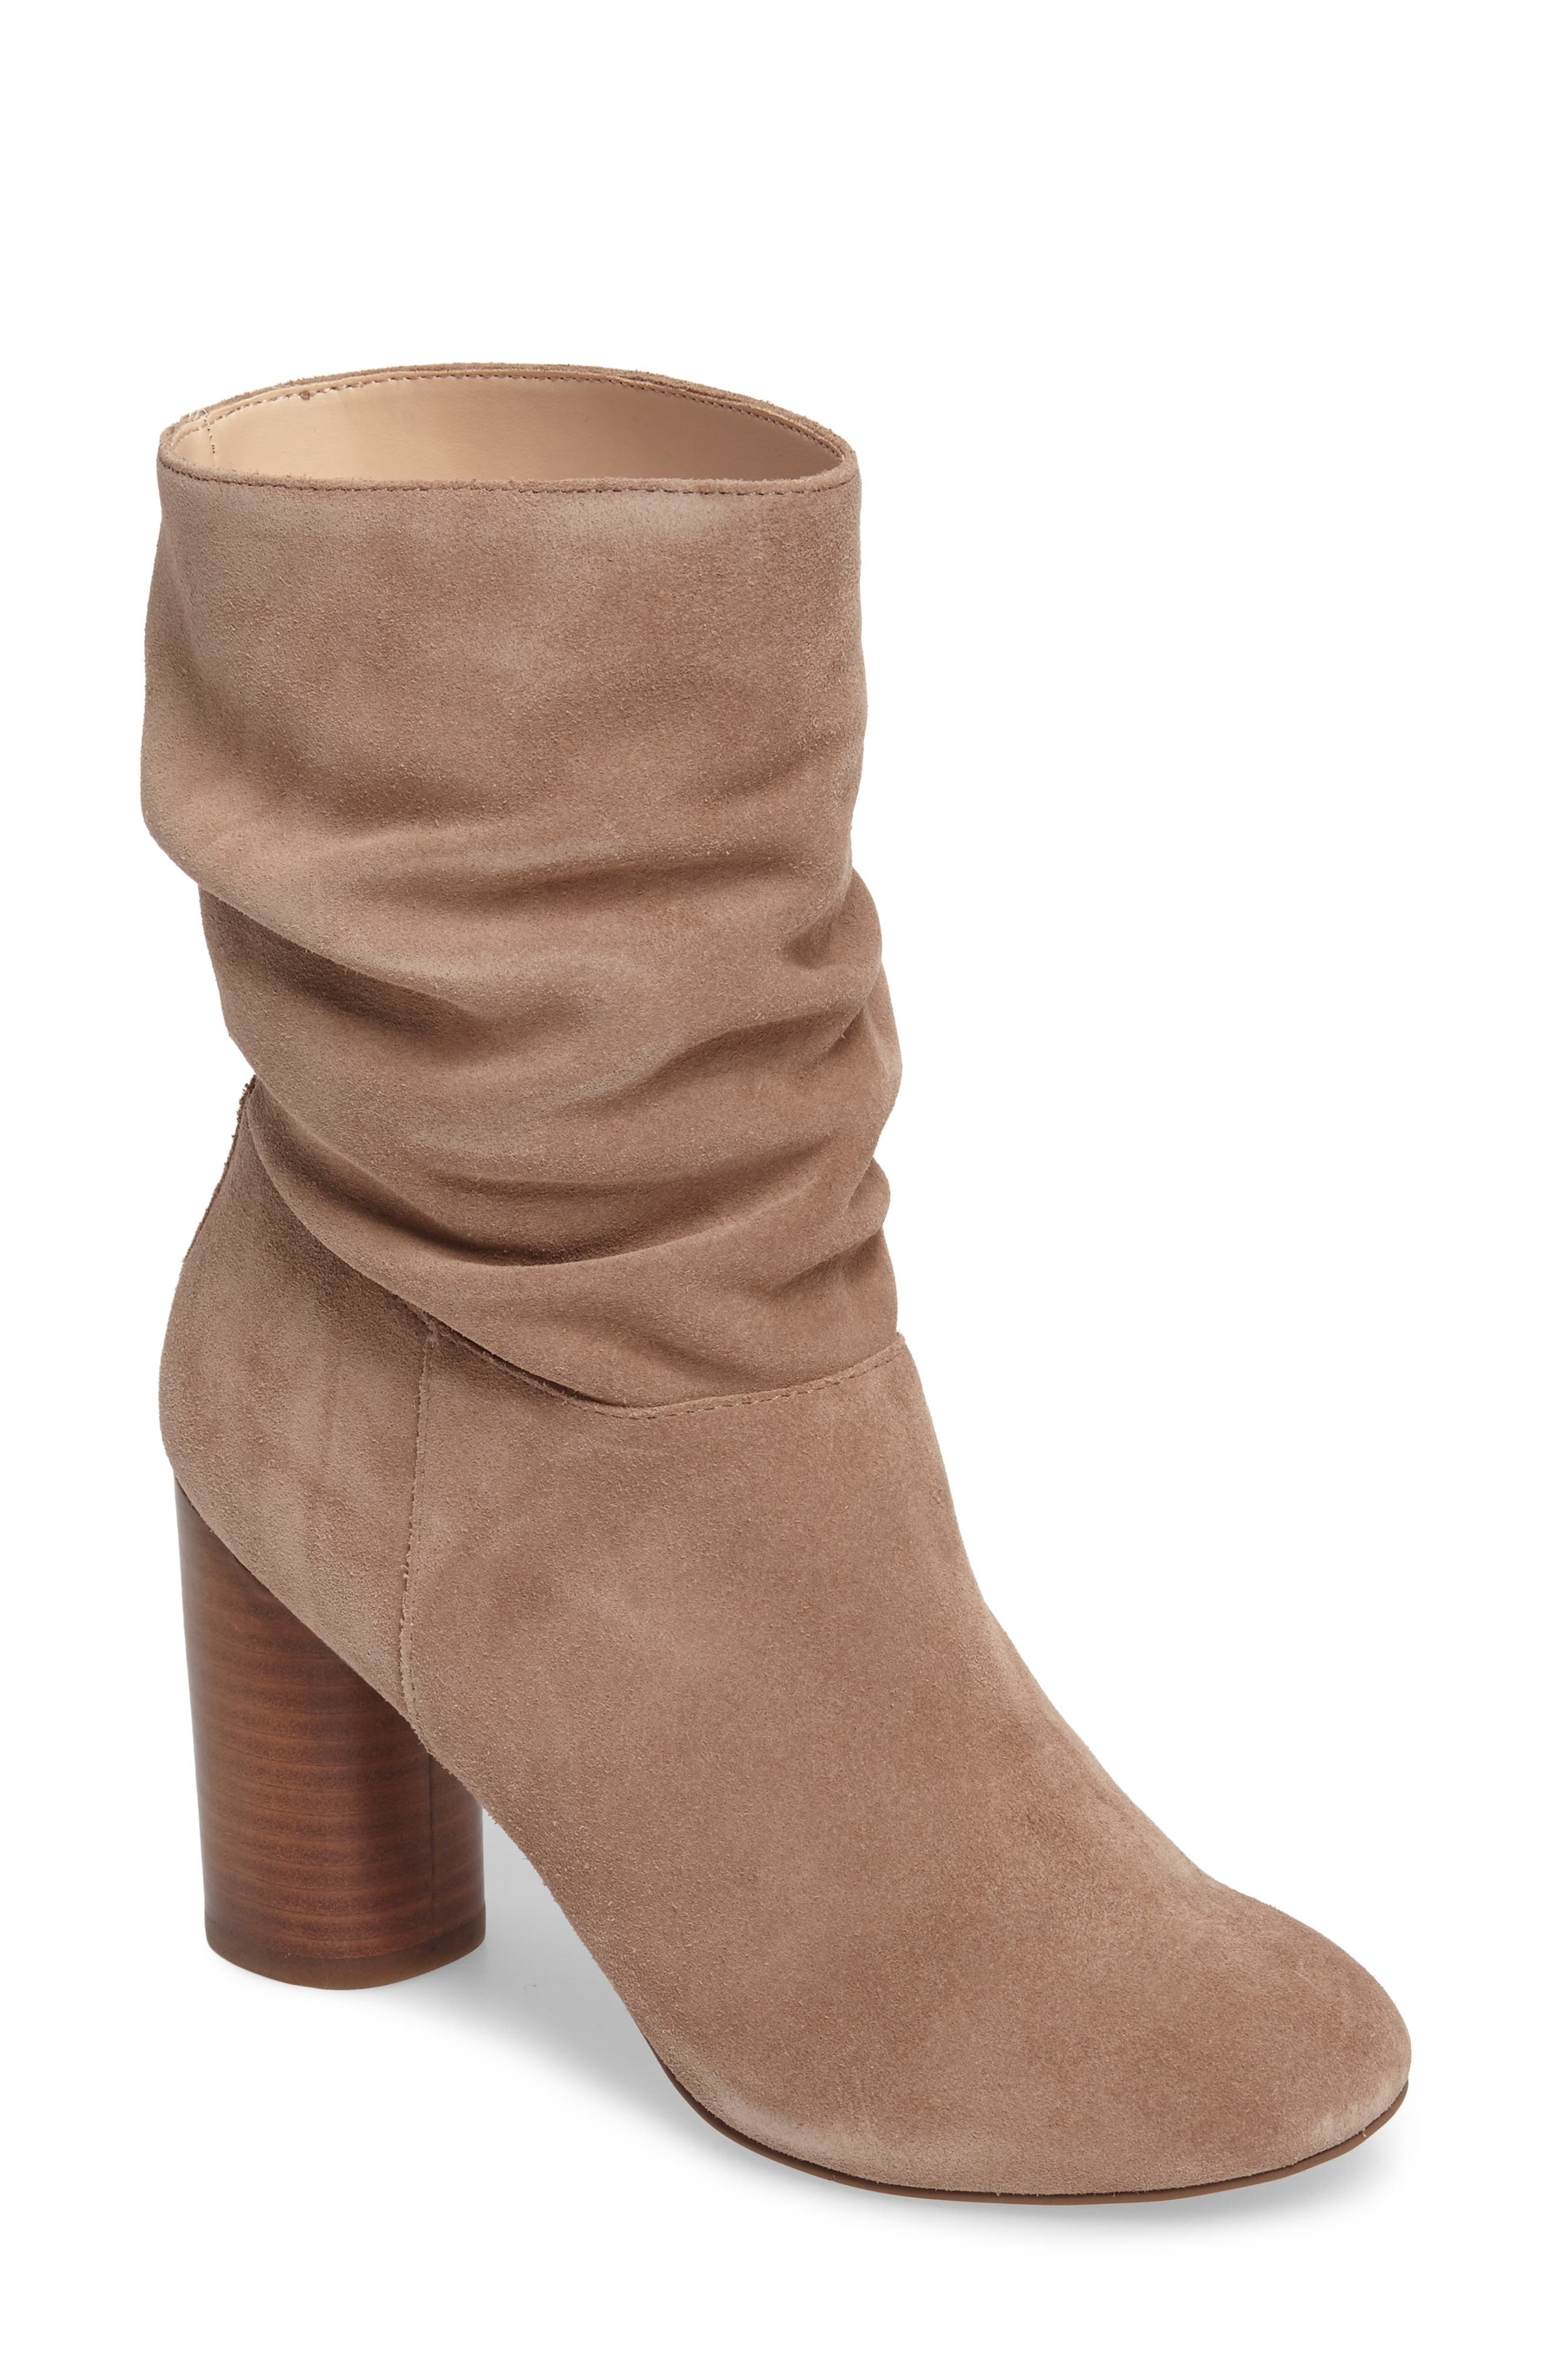 Belen Slouchy Bootie,                             Main thumbnail 1, color,                             Night Taupe